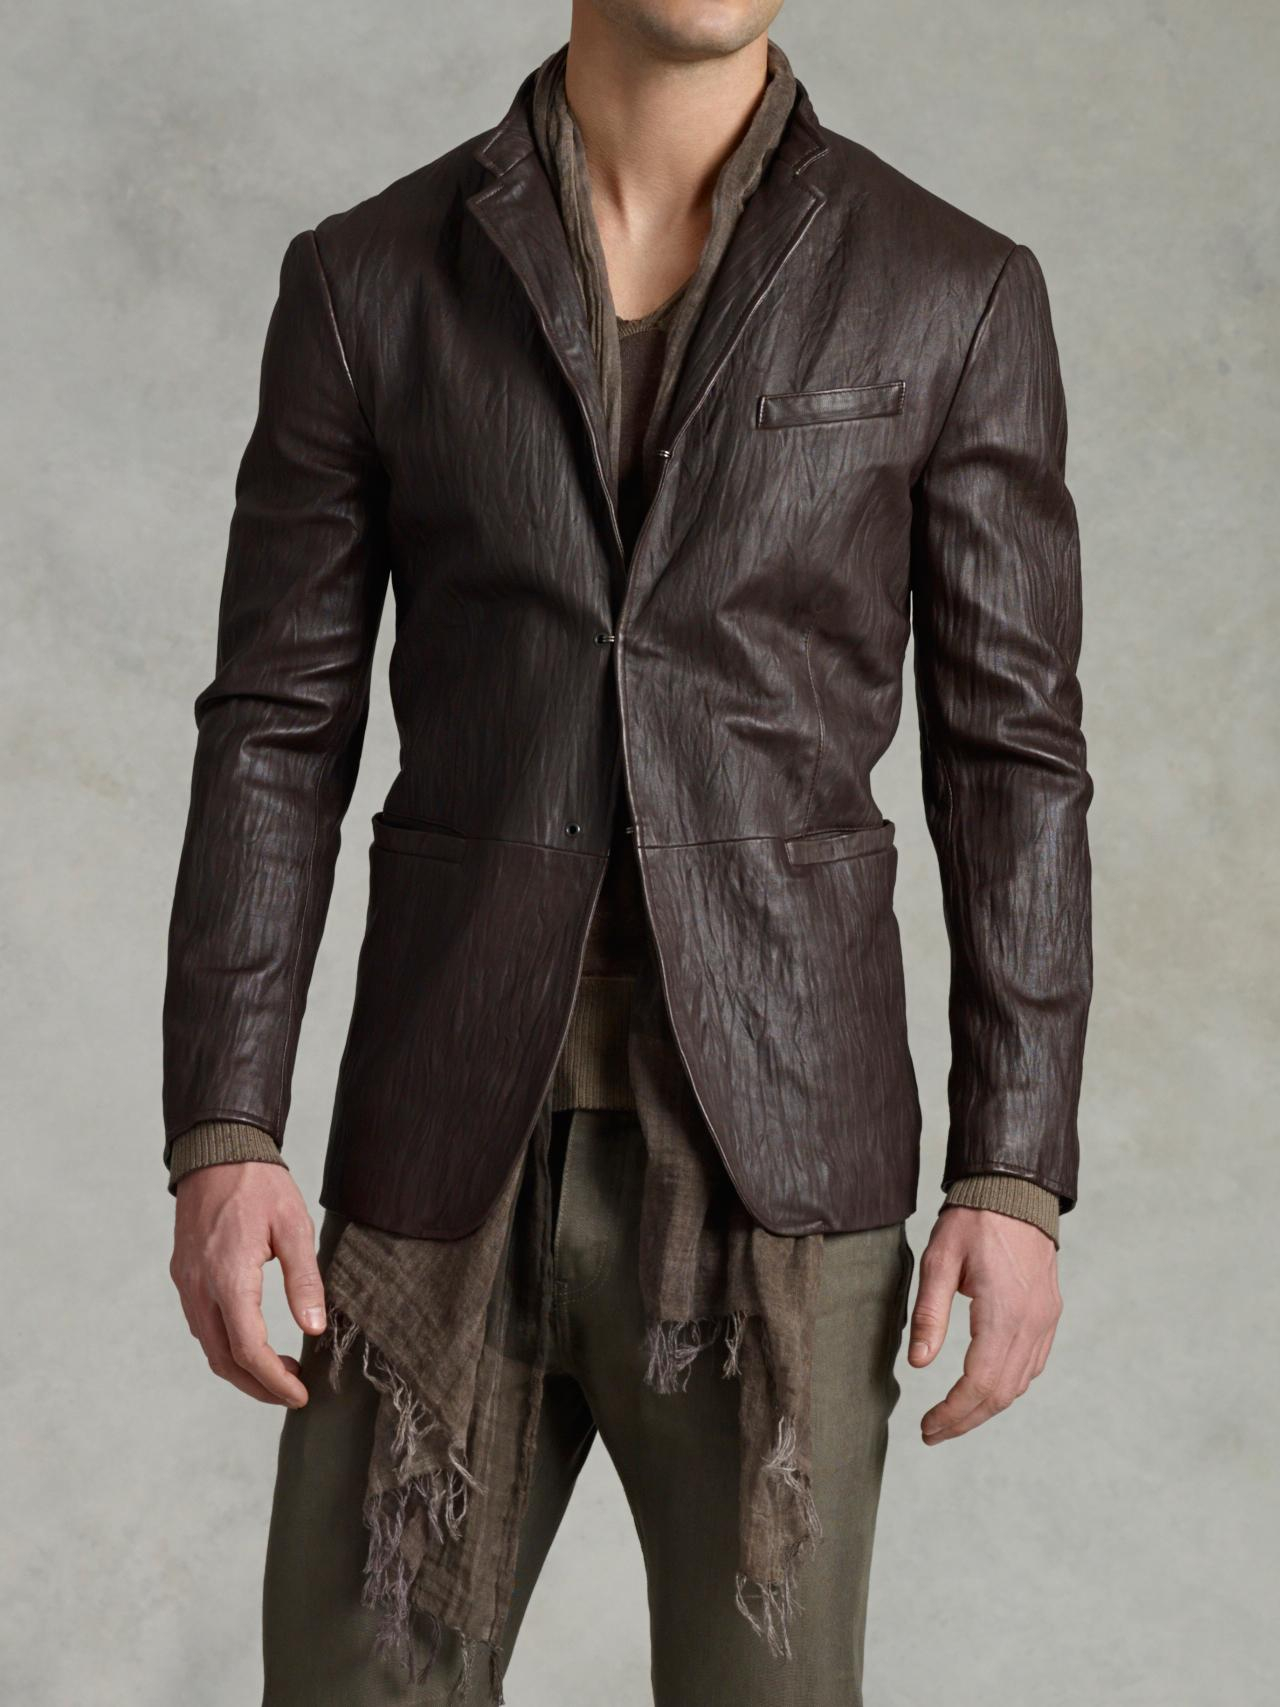 John varvatos Short Collar Leather Jacket in Brown for Men | Lyst